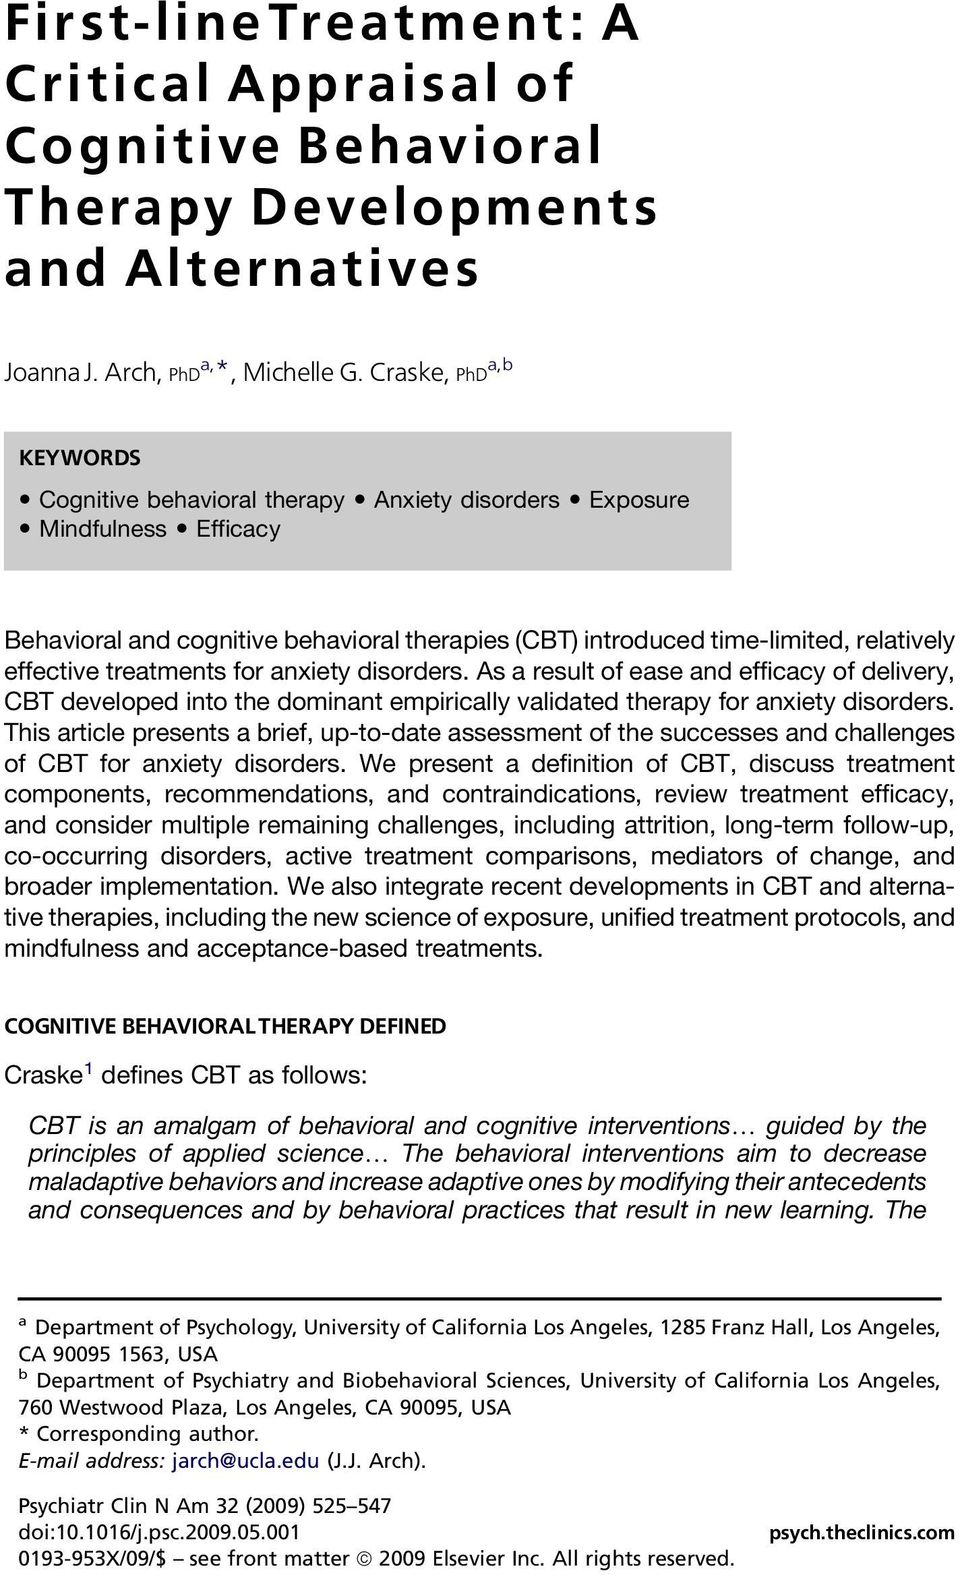 treatments for anxiety disorders. As a result of ease and efficacy of delivery, CBT developed into the dominant empirically validated therapy for anxiety disorders.